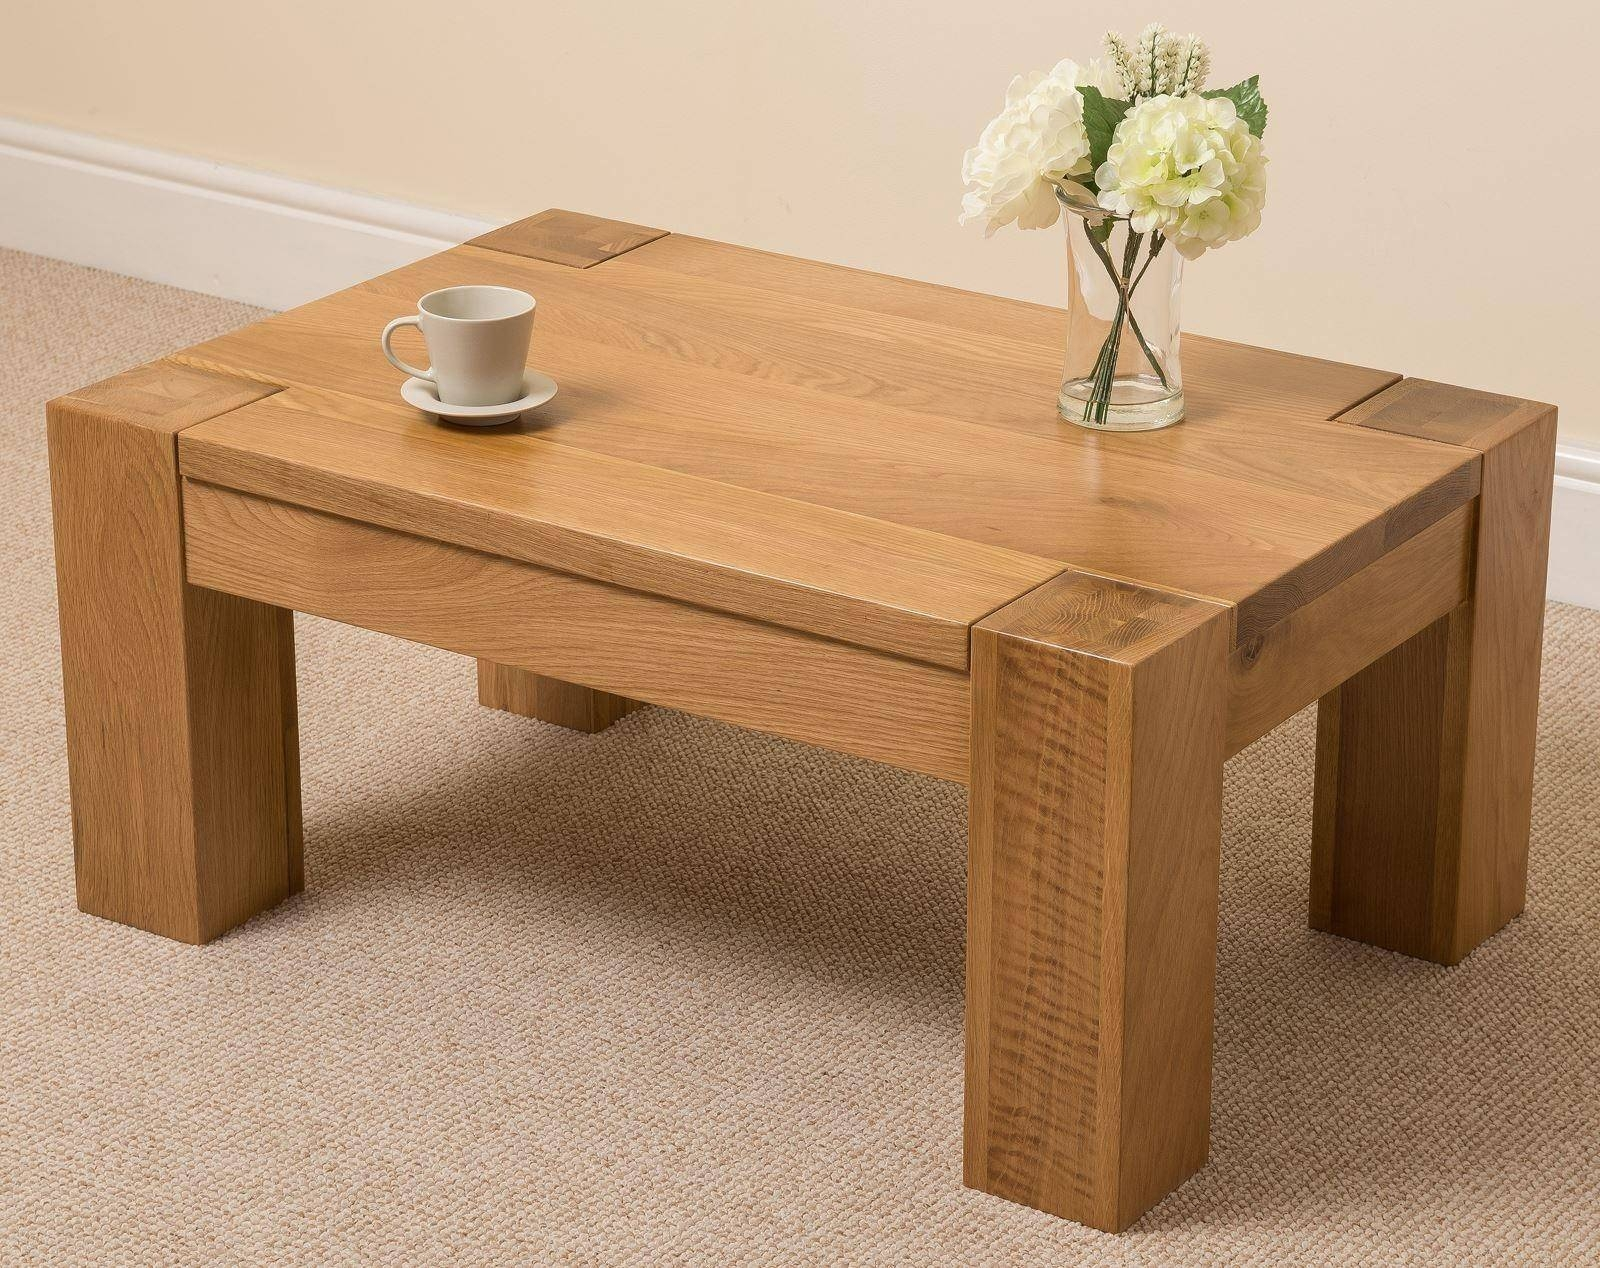 All You Need To Know About Solid Oak Coffee Tables - Chinese with regard to Square Oak Coffee Tables (Image 2 of 30)